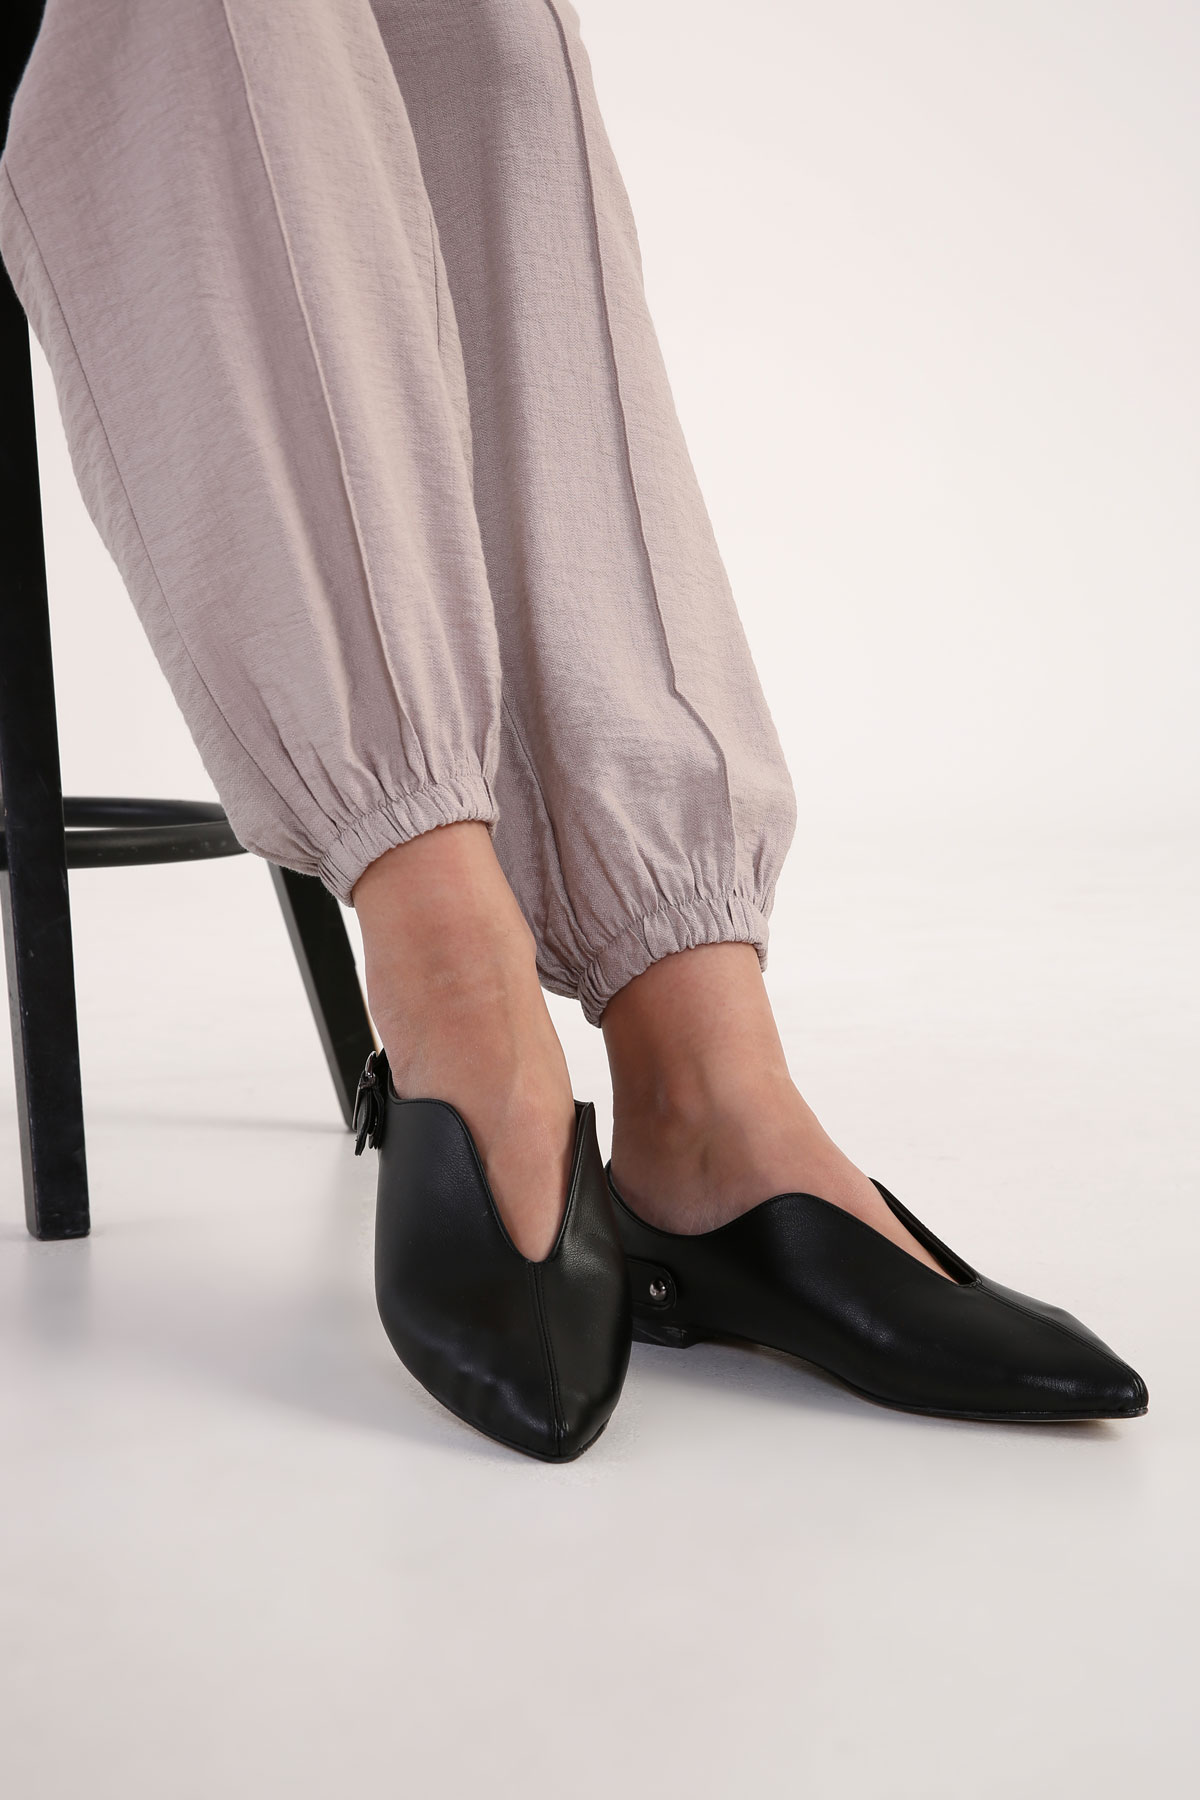 Front Detailed POint Toe Flats